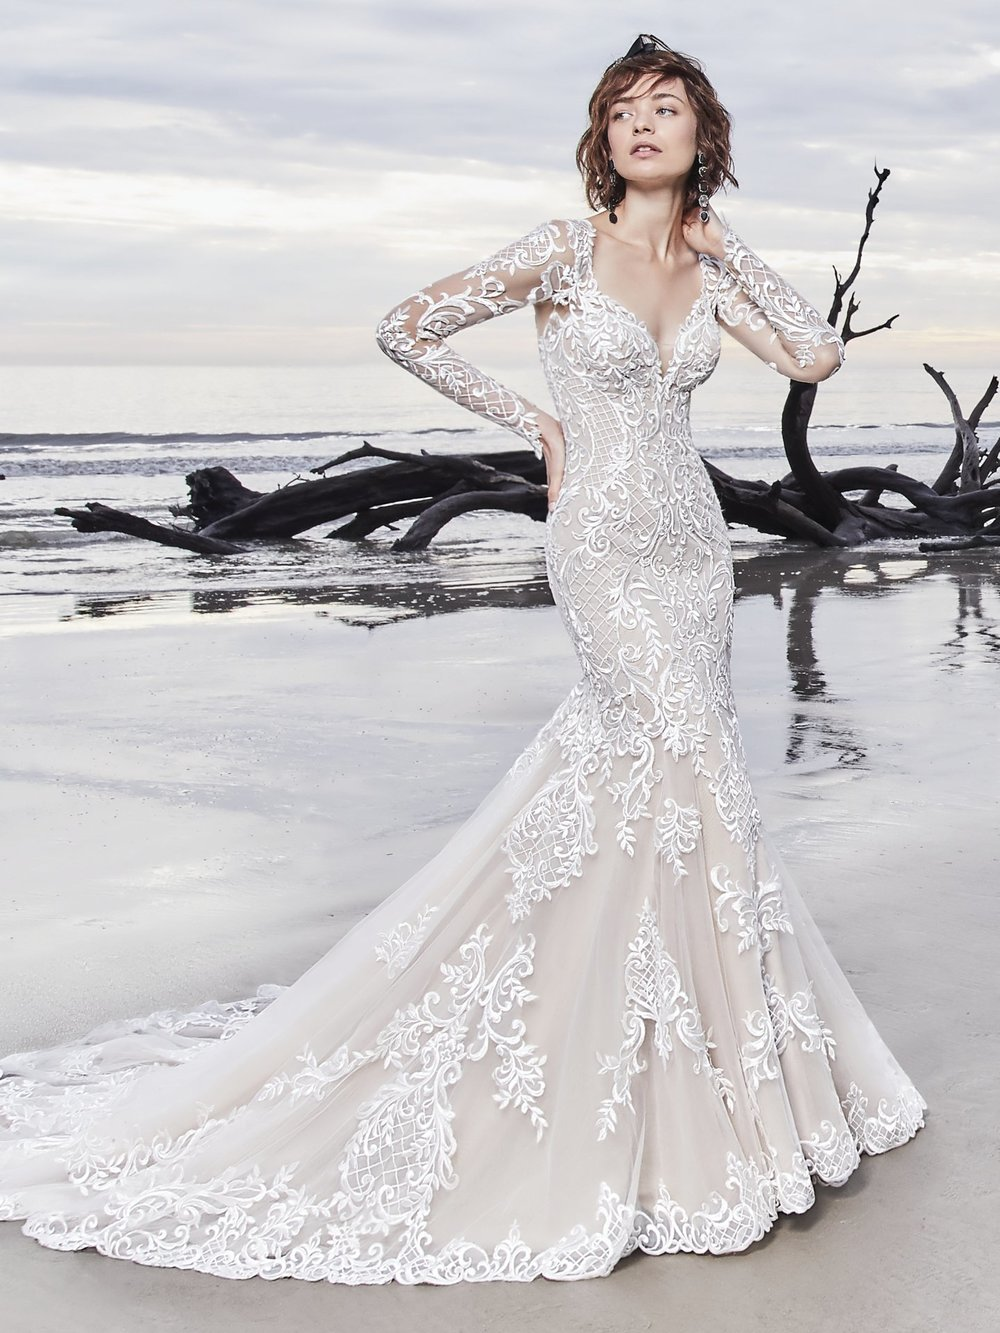 LONG SLEEVE WEDDING DRESSES - From delicate illusion lace detailing, to glamorous hand beading, sleeves add a touch of luxury to your wedding gown for an unforgettable bridal look.